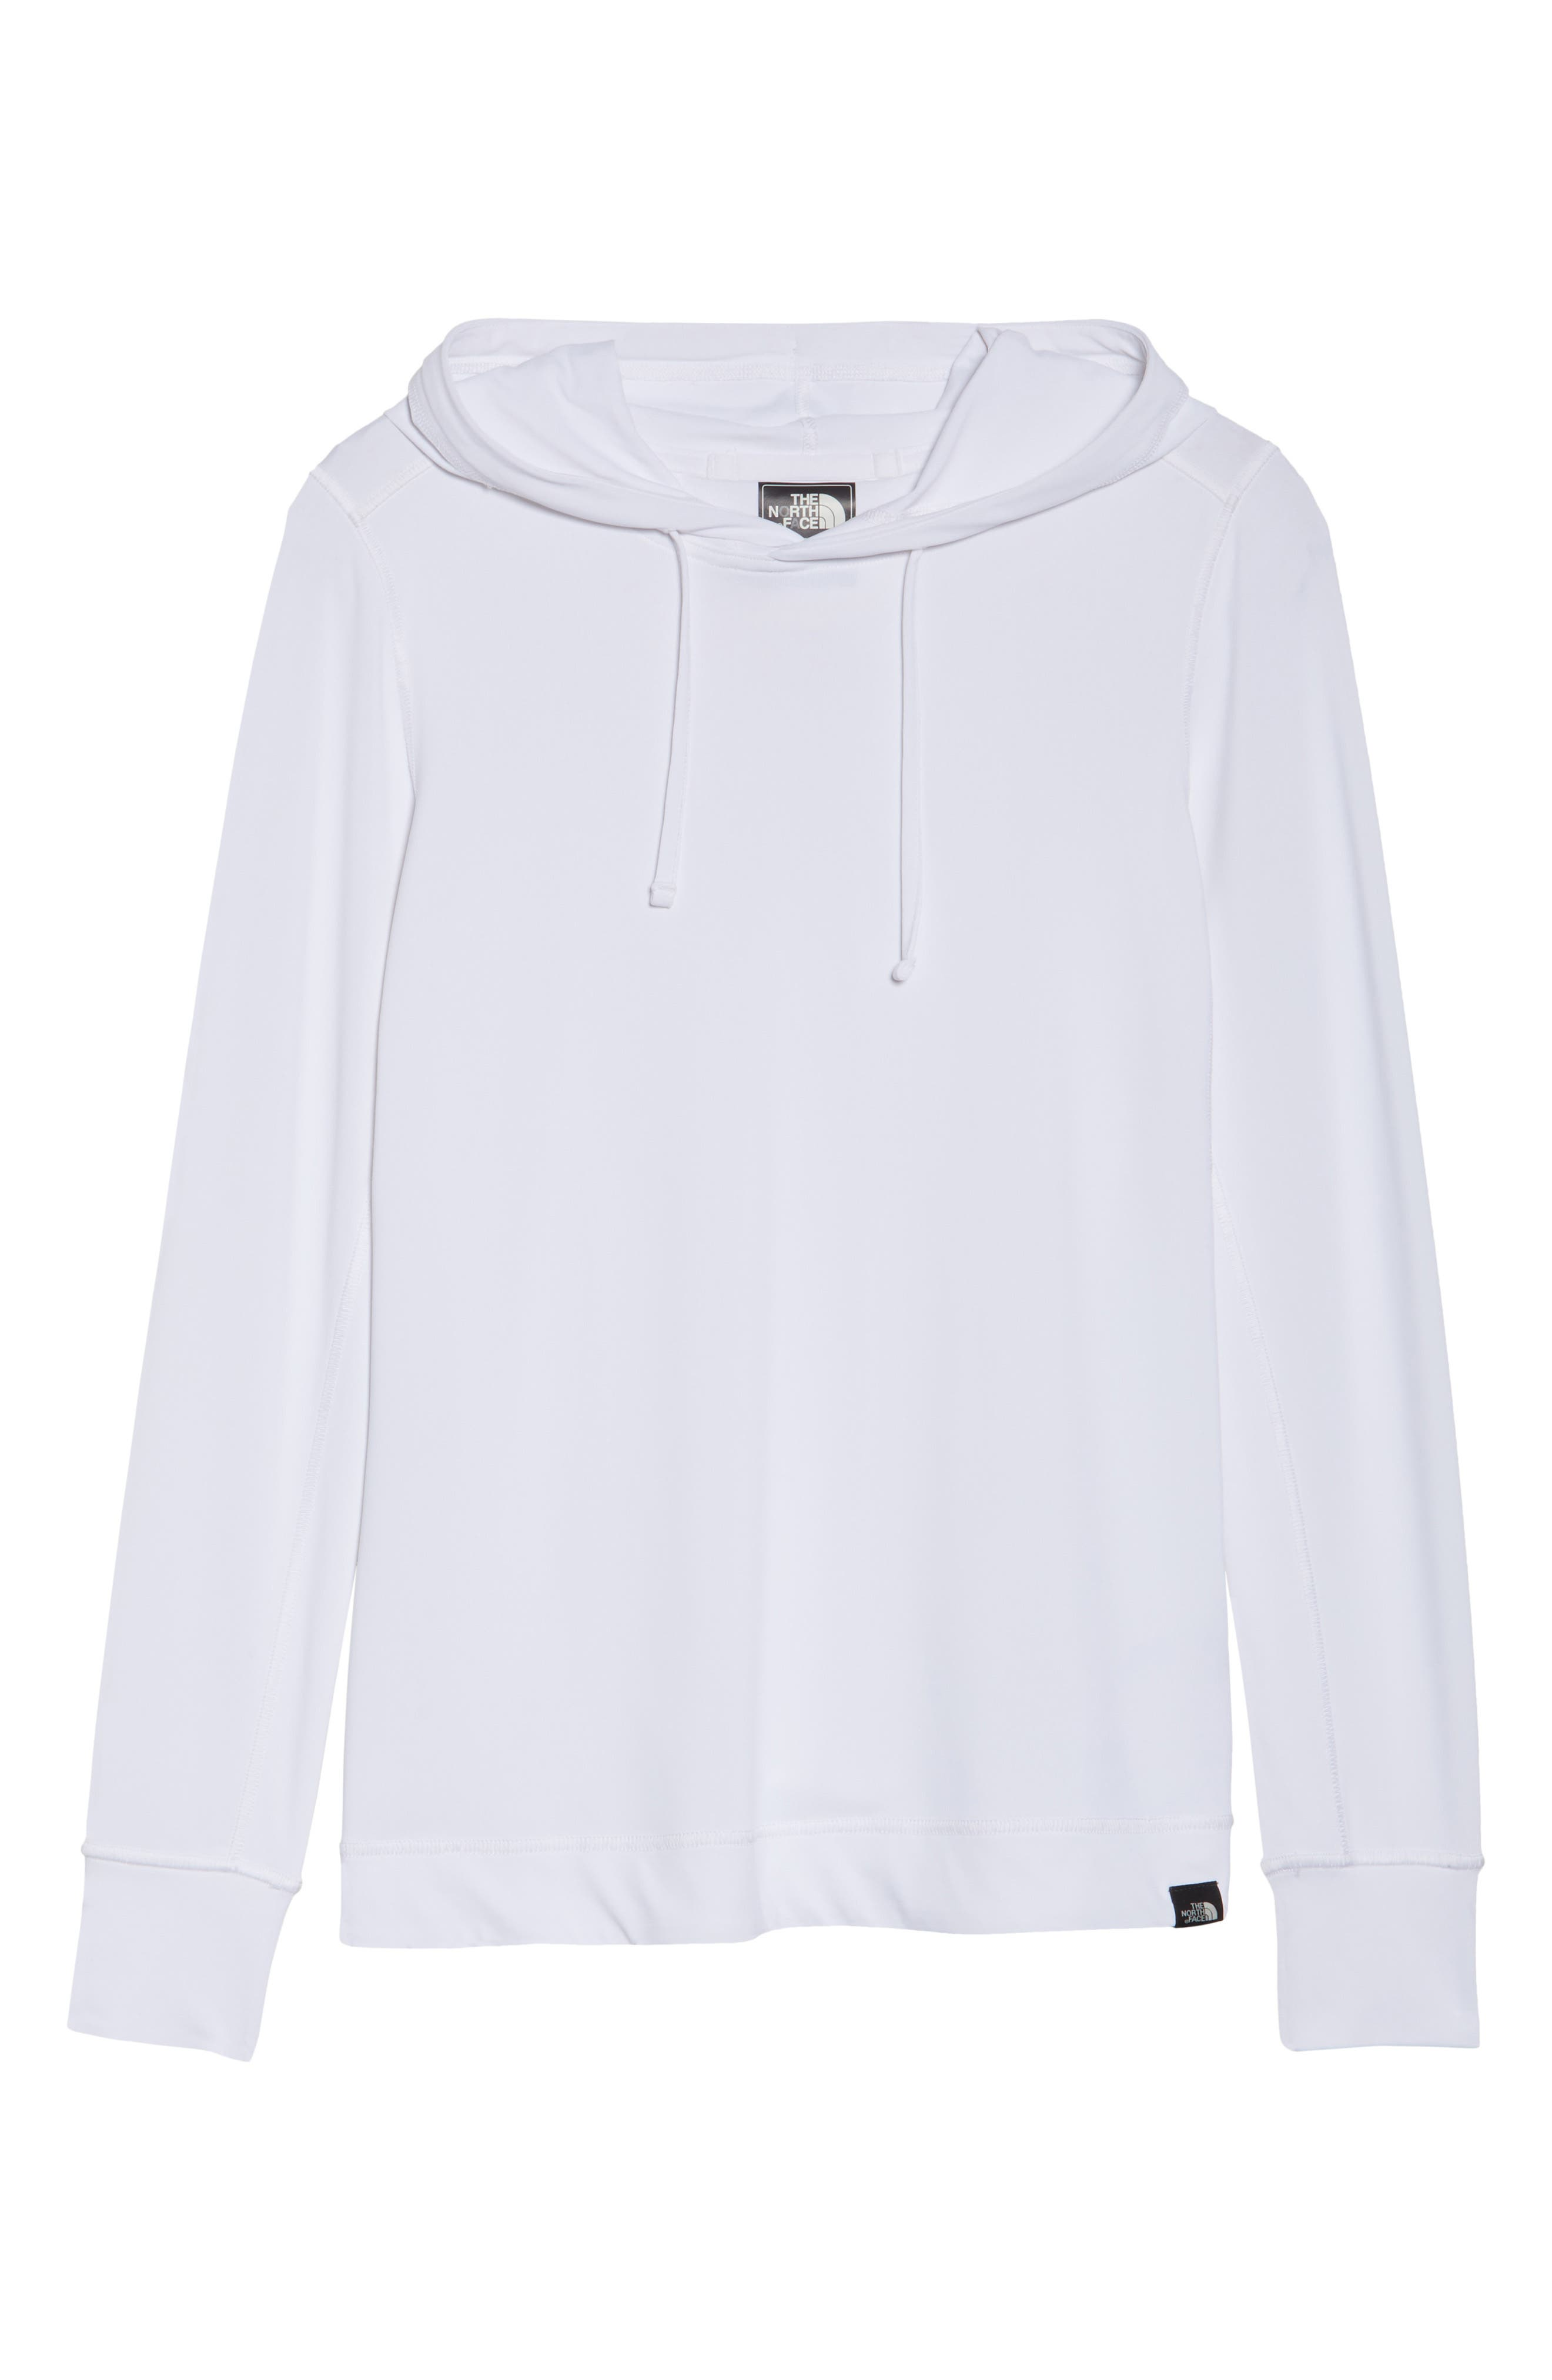 Shade Me Hooded Top,                             Alternate thumbnail 7, color,                             100